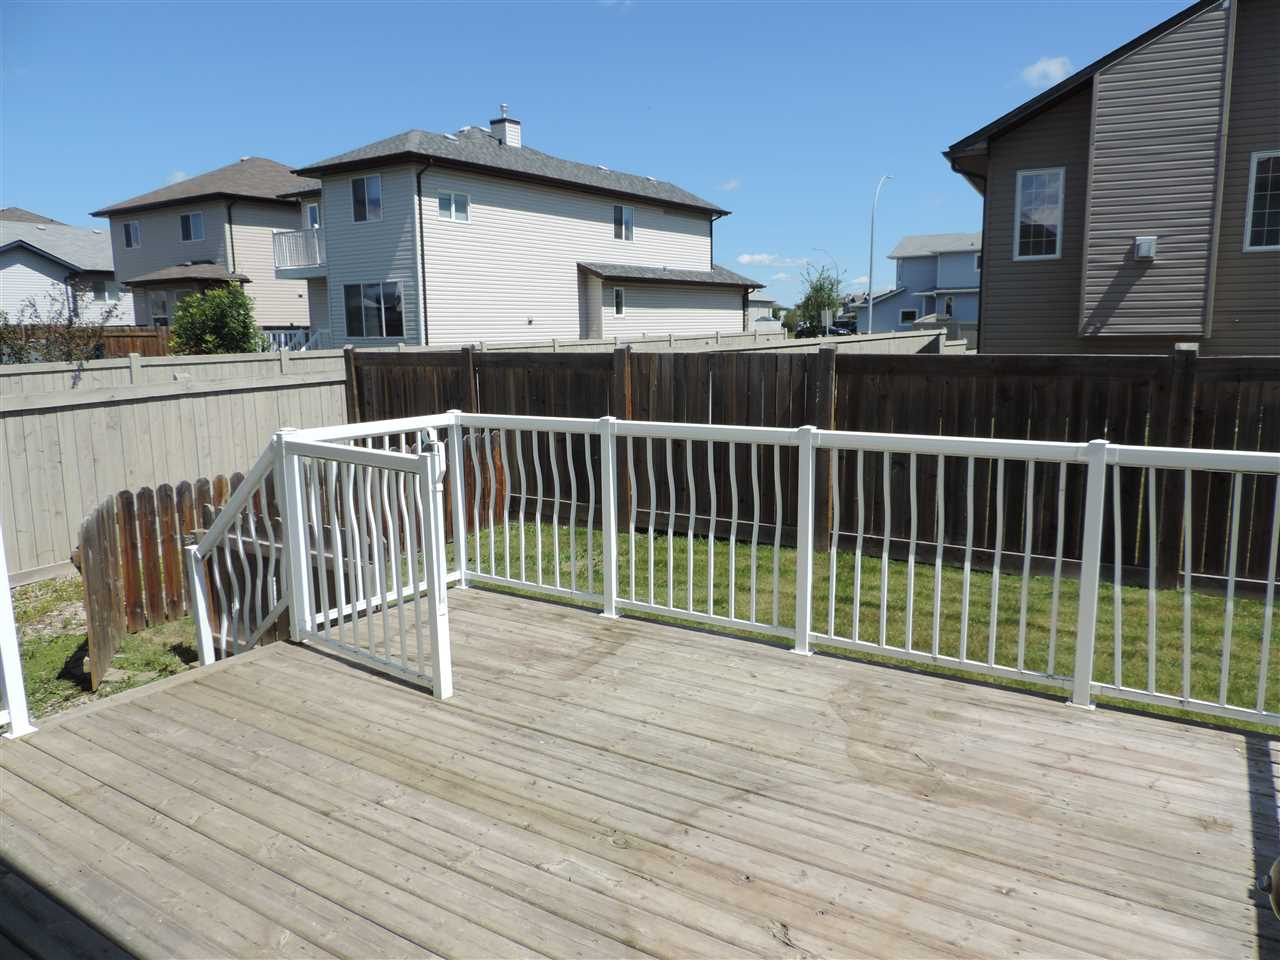 Photo 18: 8009 97 Street: Morinville House for sale : MLS(r) # E4071559